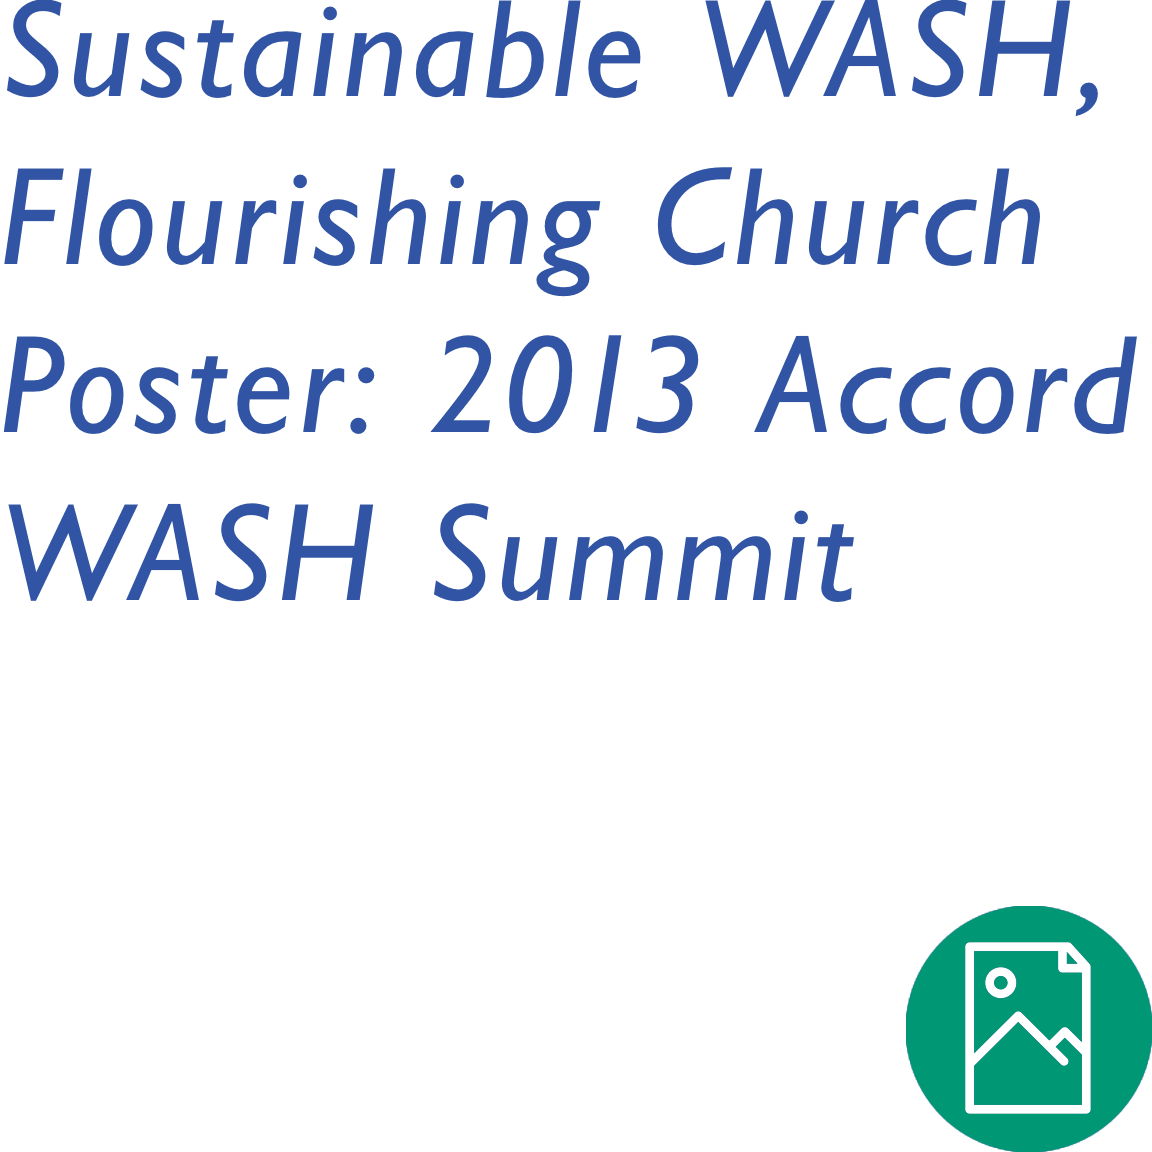 Sustainable WASH, Flourishing Church